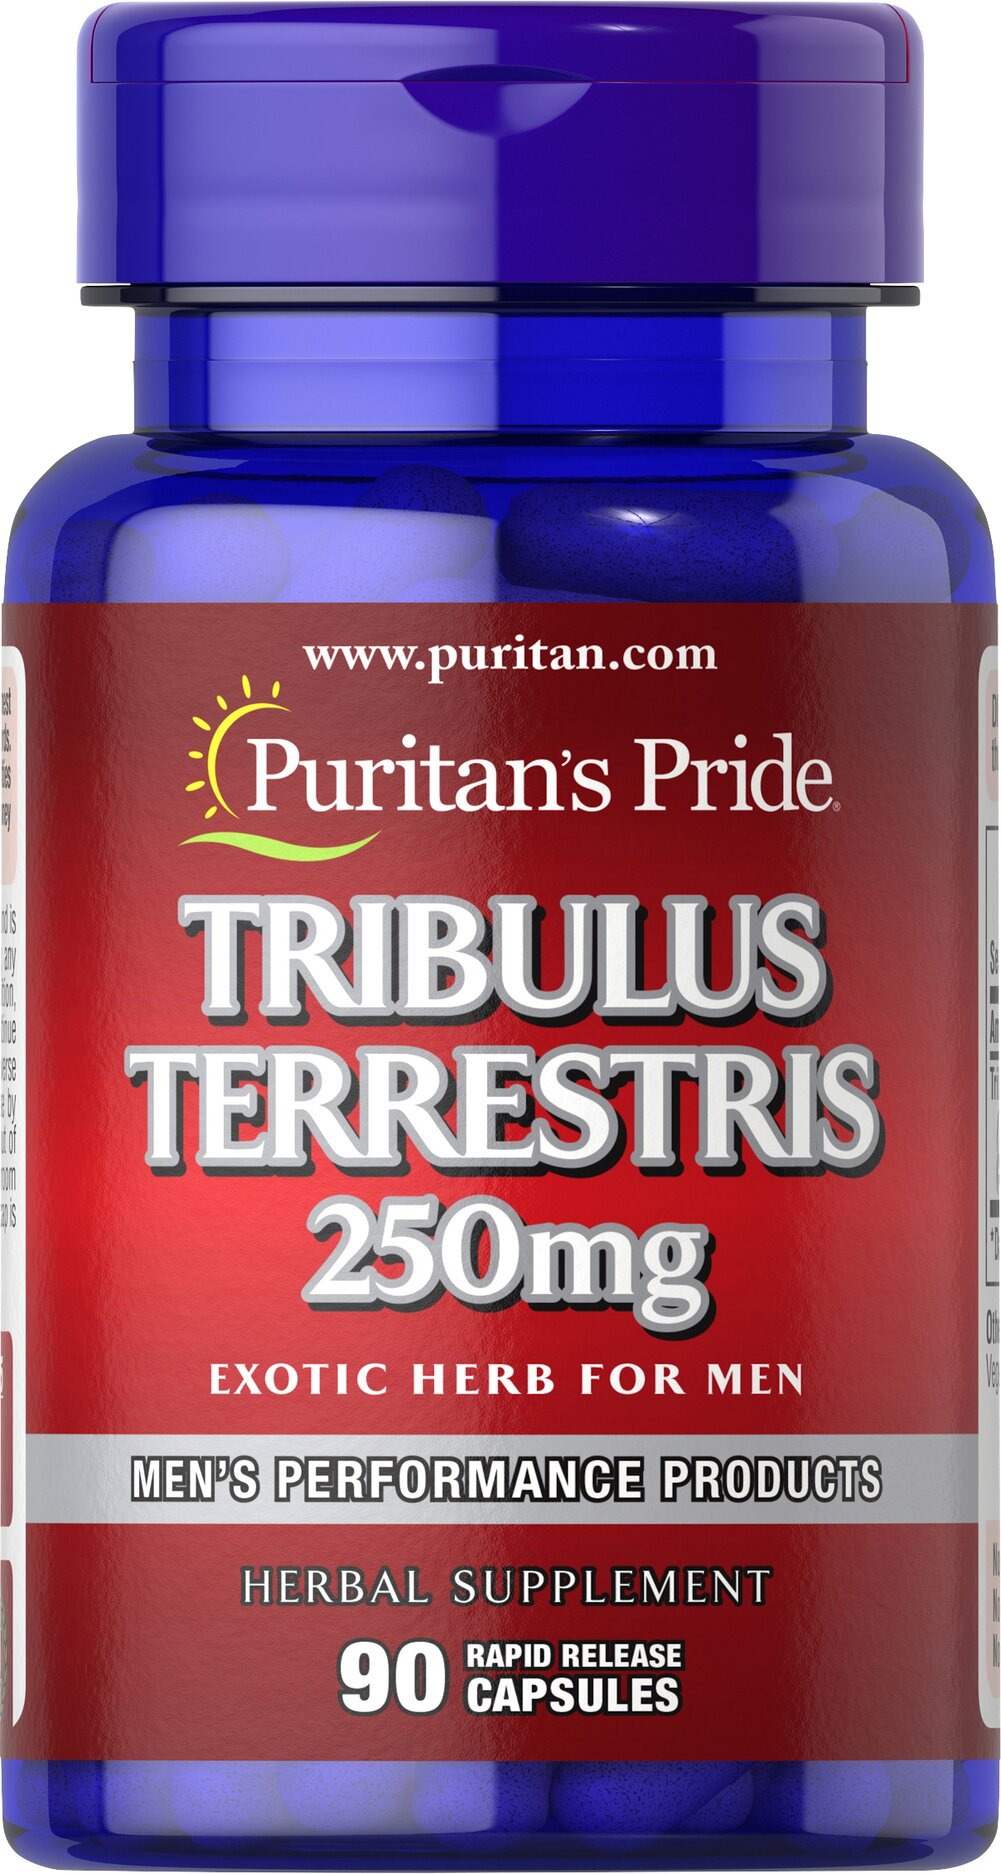 Tribulus Terrestris 250 mg <p>For Men</p><p>Tribulus Terrestris can be found throughout  Asia, where it has long been popular with bodybuilders. Tribulus Terrestris is lab-tested for 40% saponins per serving, one of the highest standardized levels available on the market today! As an herb traditionally used by men, Tribulus Terrestris is the perfect complement to your active lifestyle.</p> 90 Capsules 250 mg $10.16